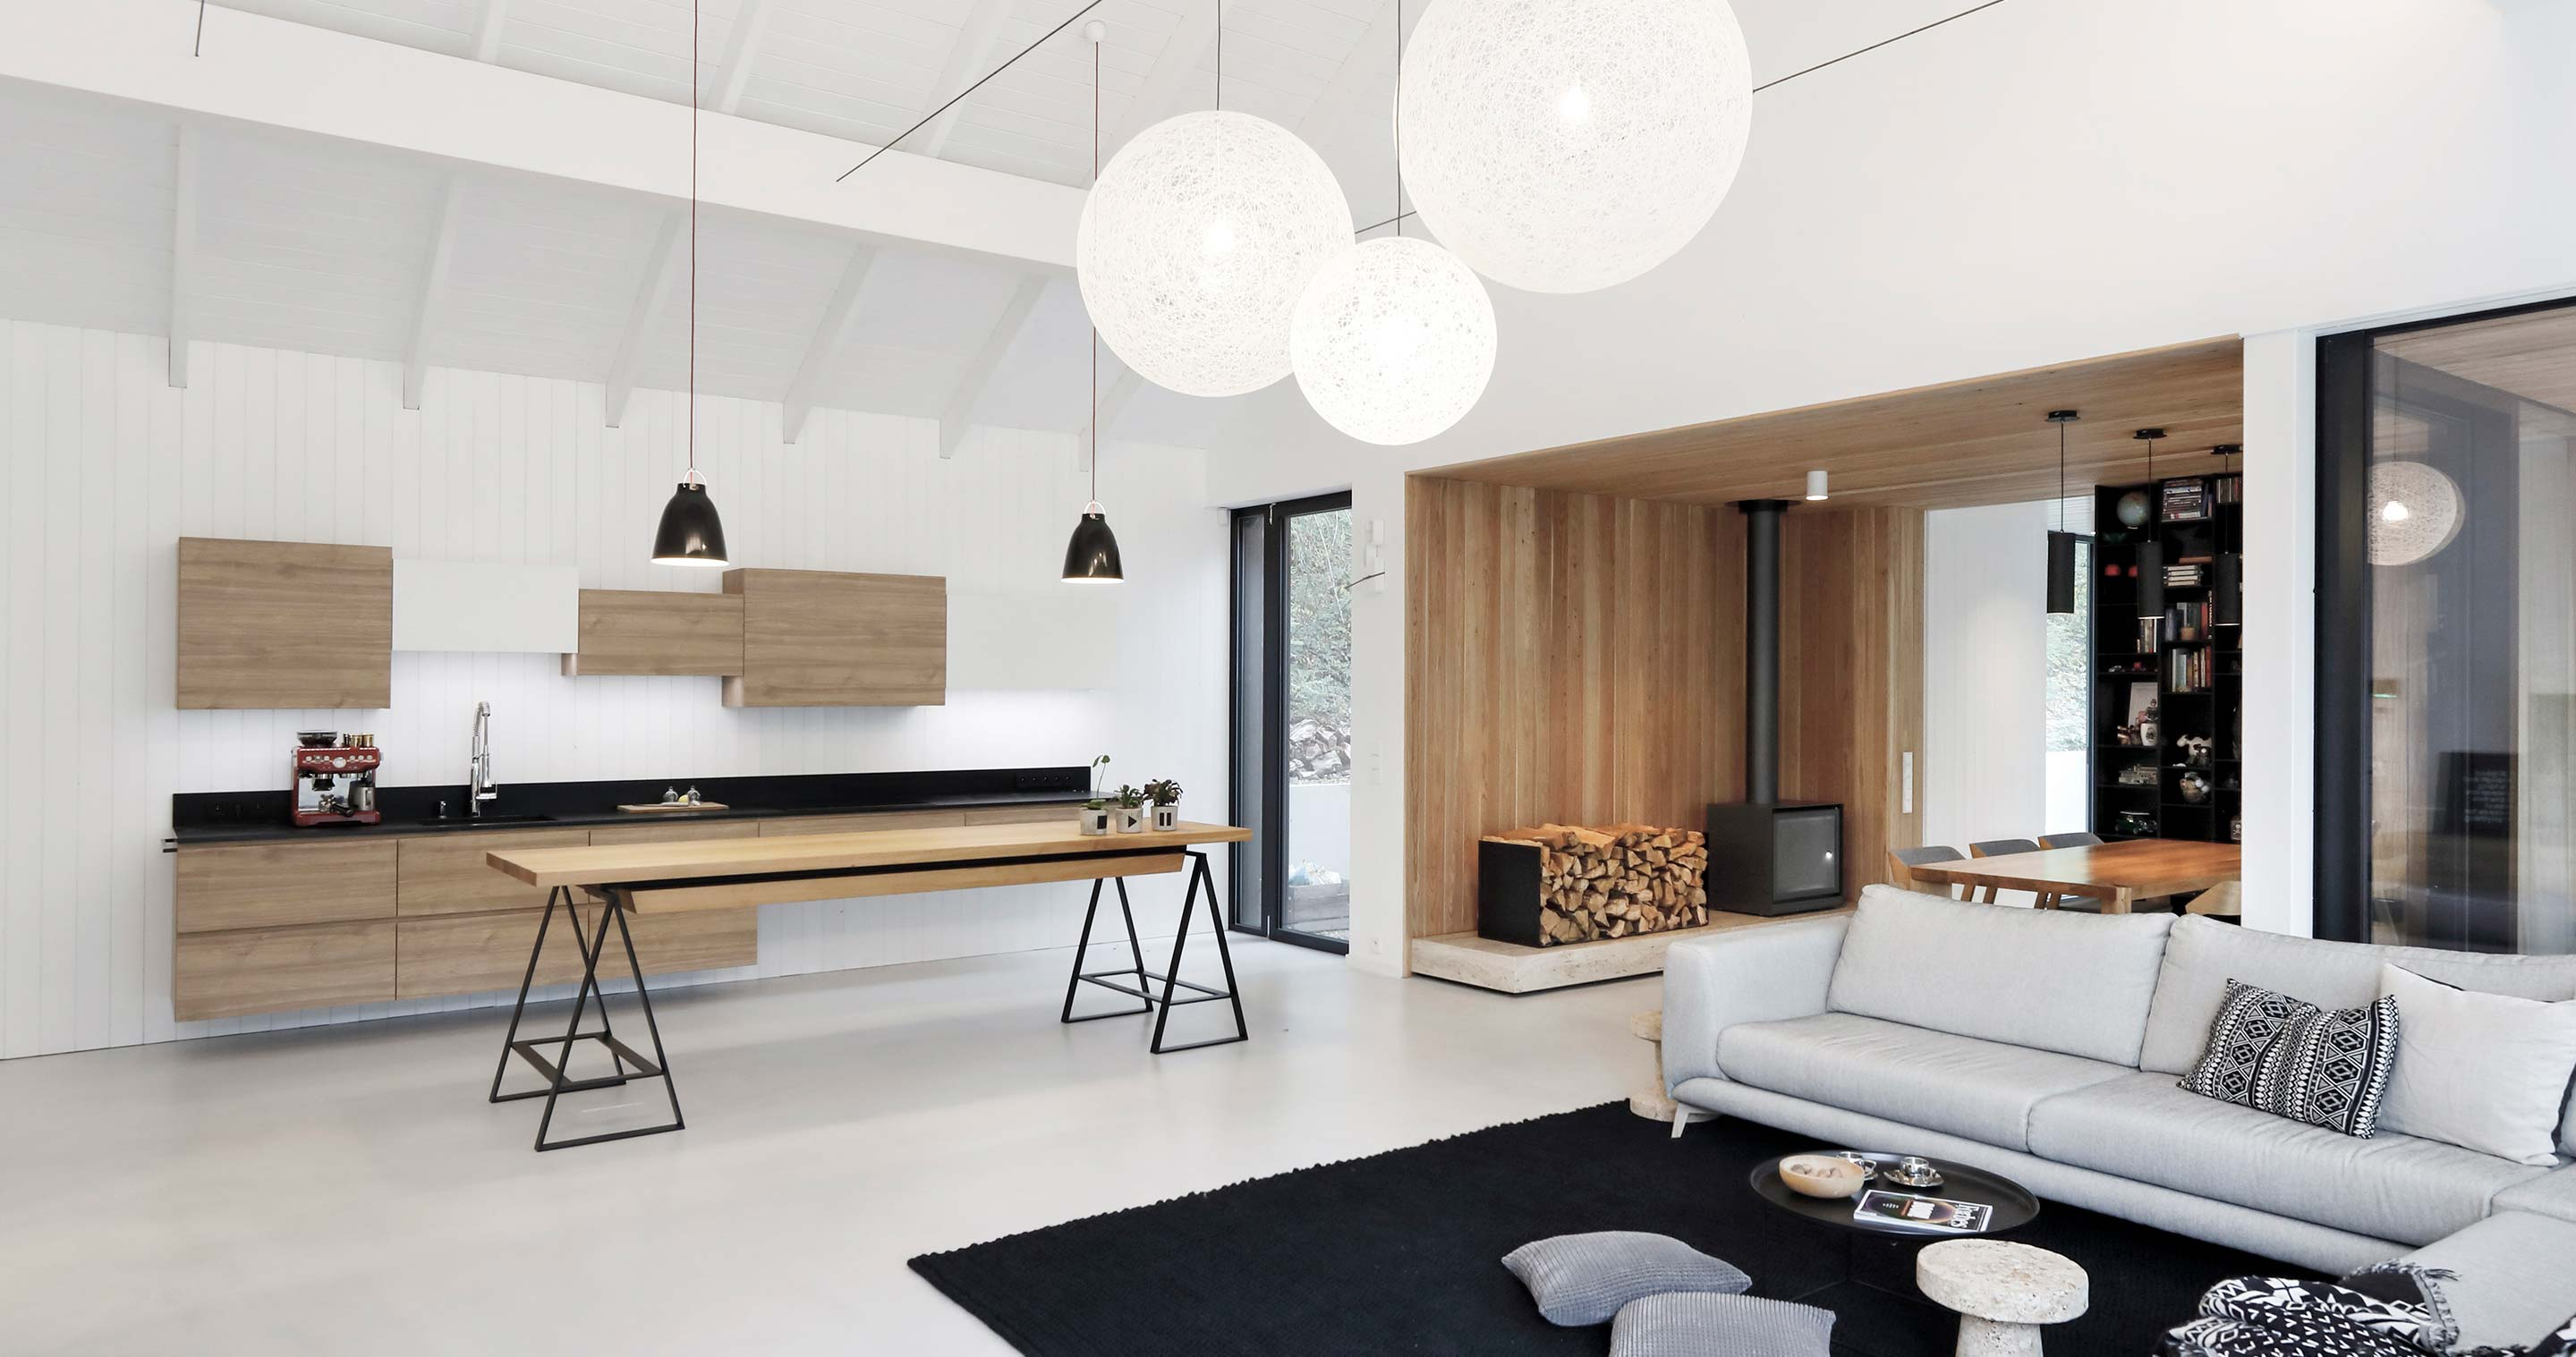 Scandinavia Meets Japan In This Czech Retreat